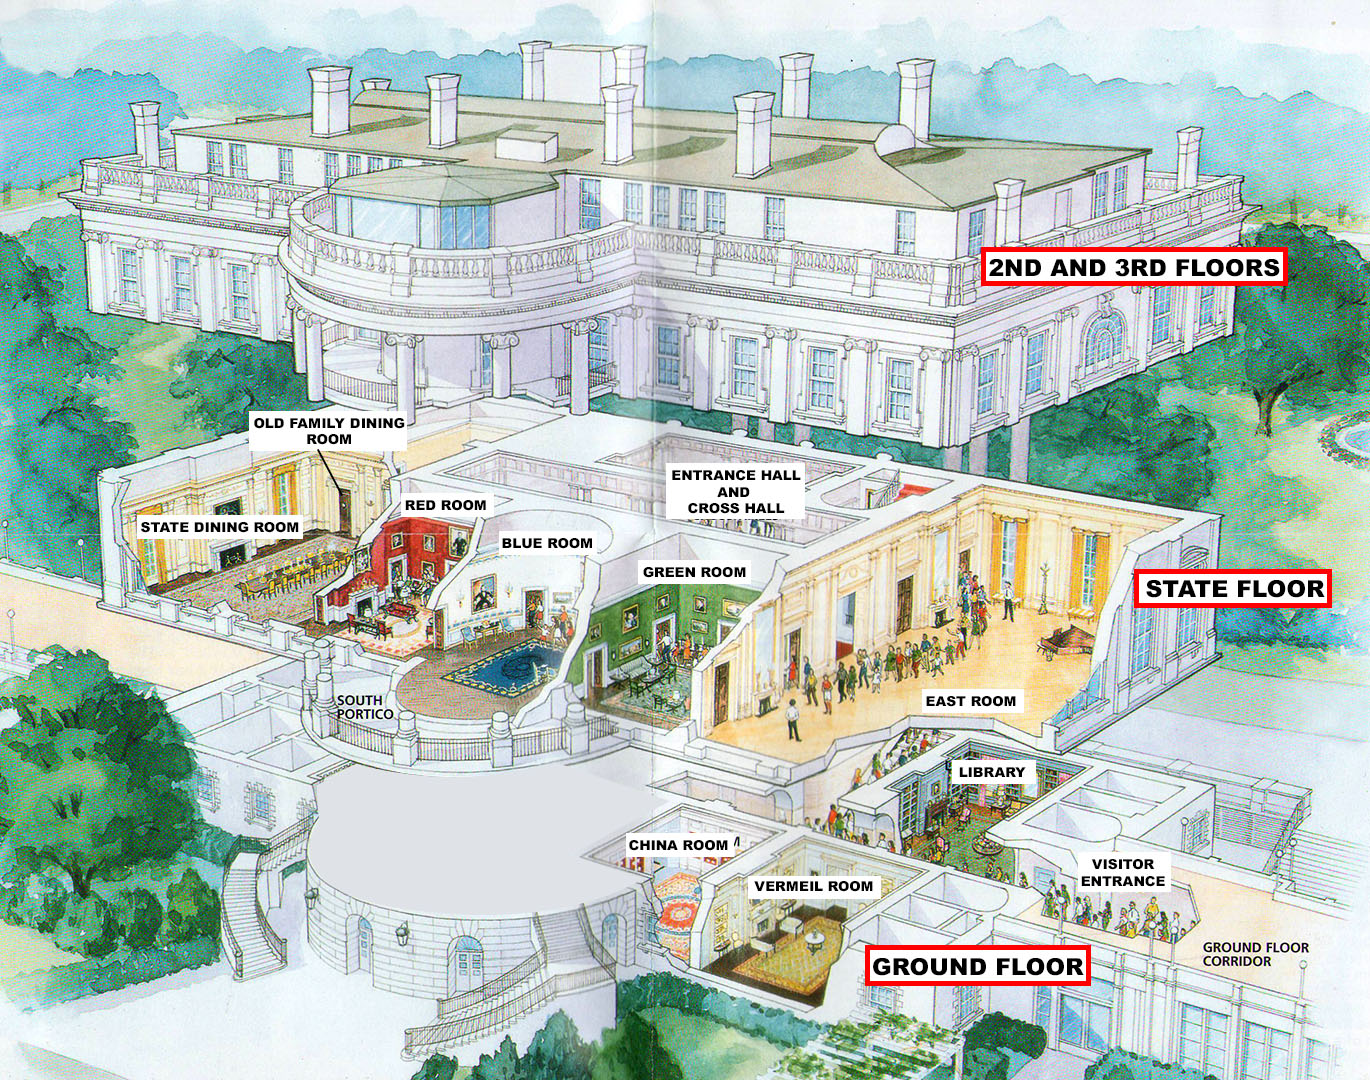 Presidents park white house white house tour diagram of room visited on the white house tour click to enlarge ccuart Gallery